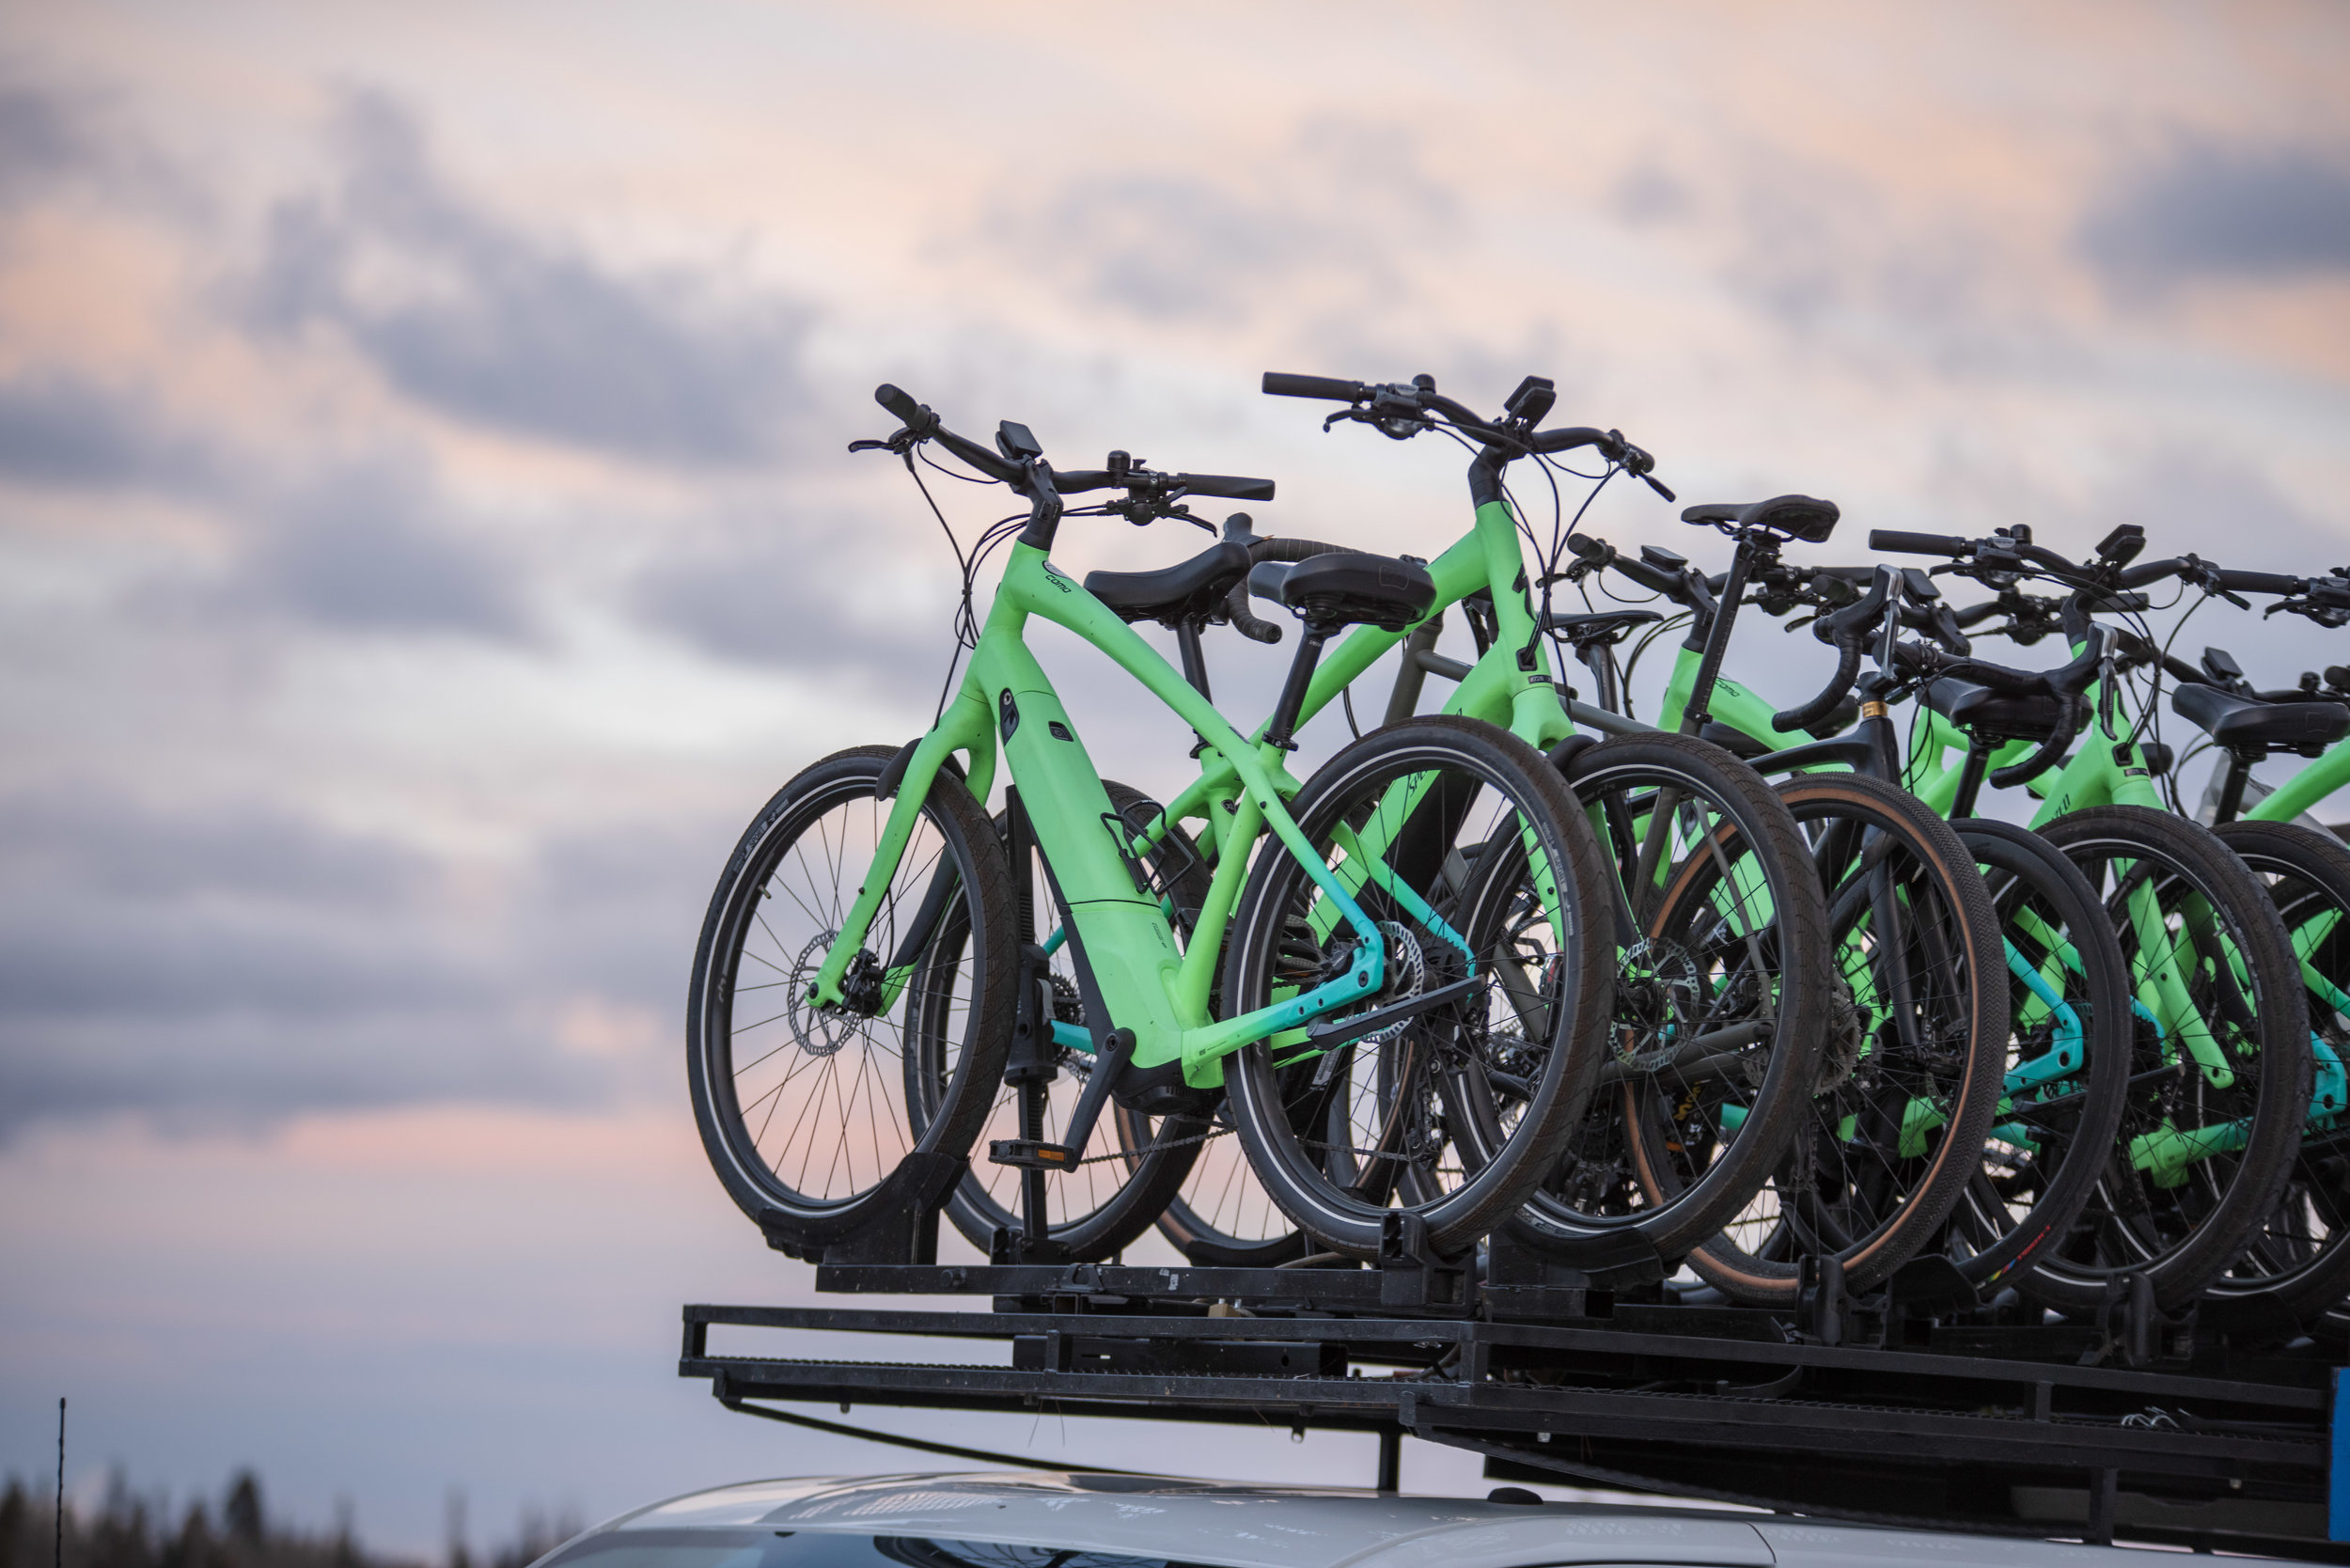 Have you ever seen so many beautiful e-bikes?